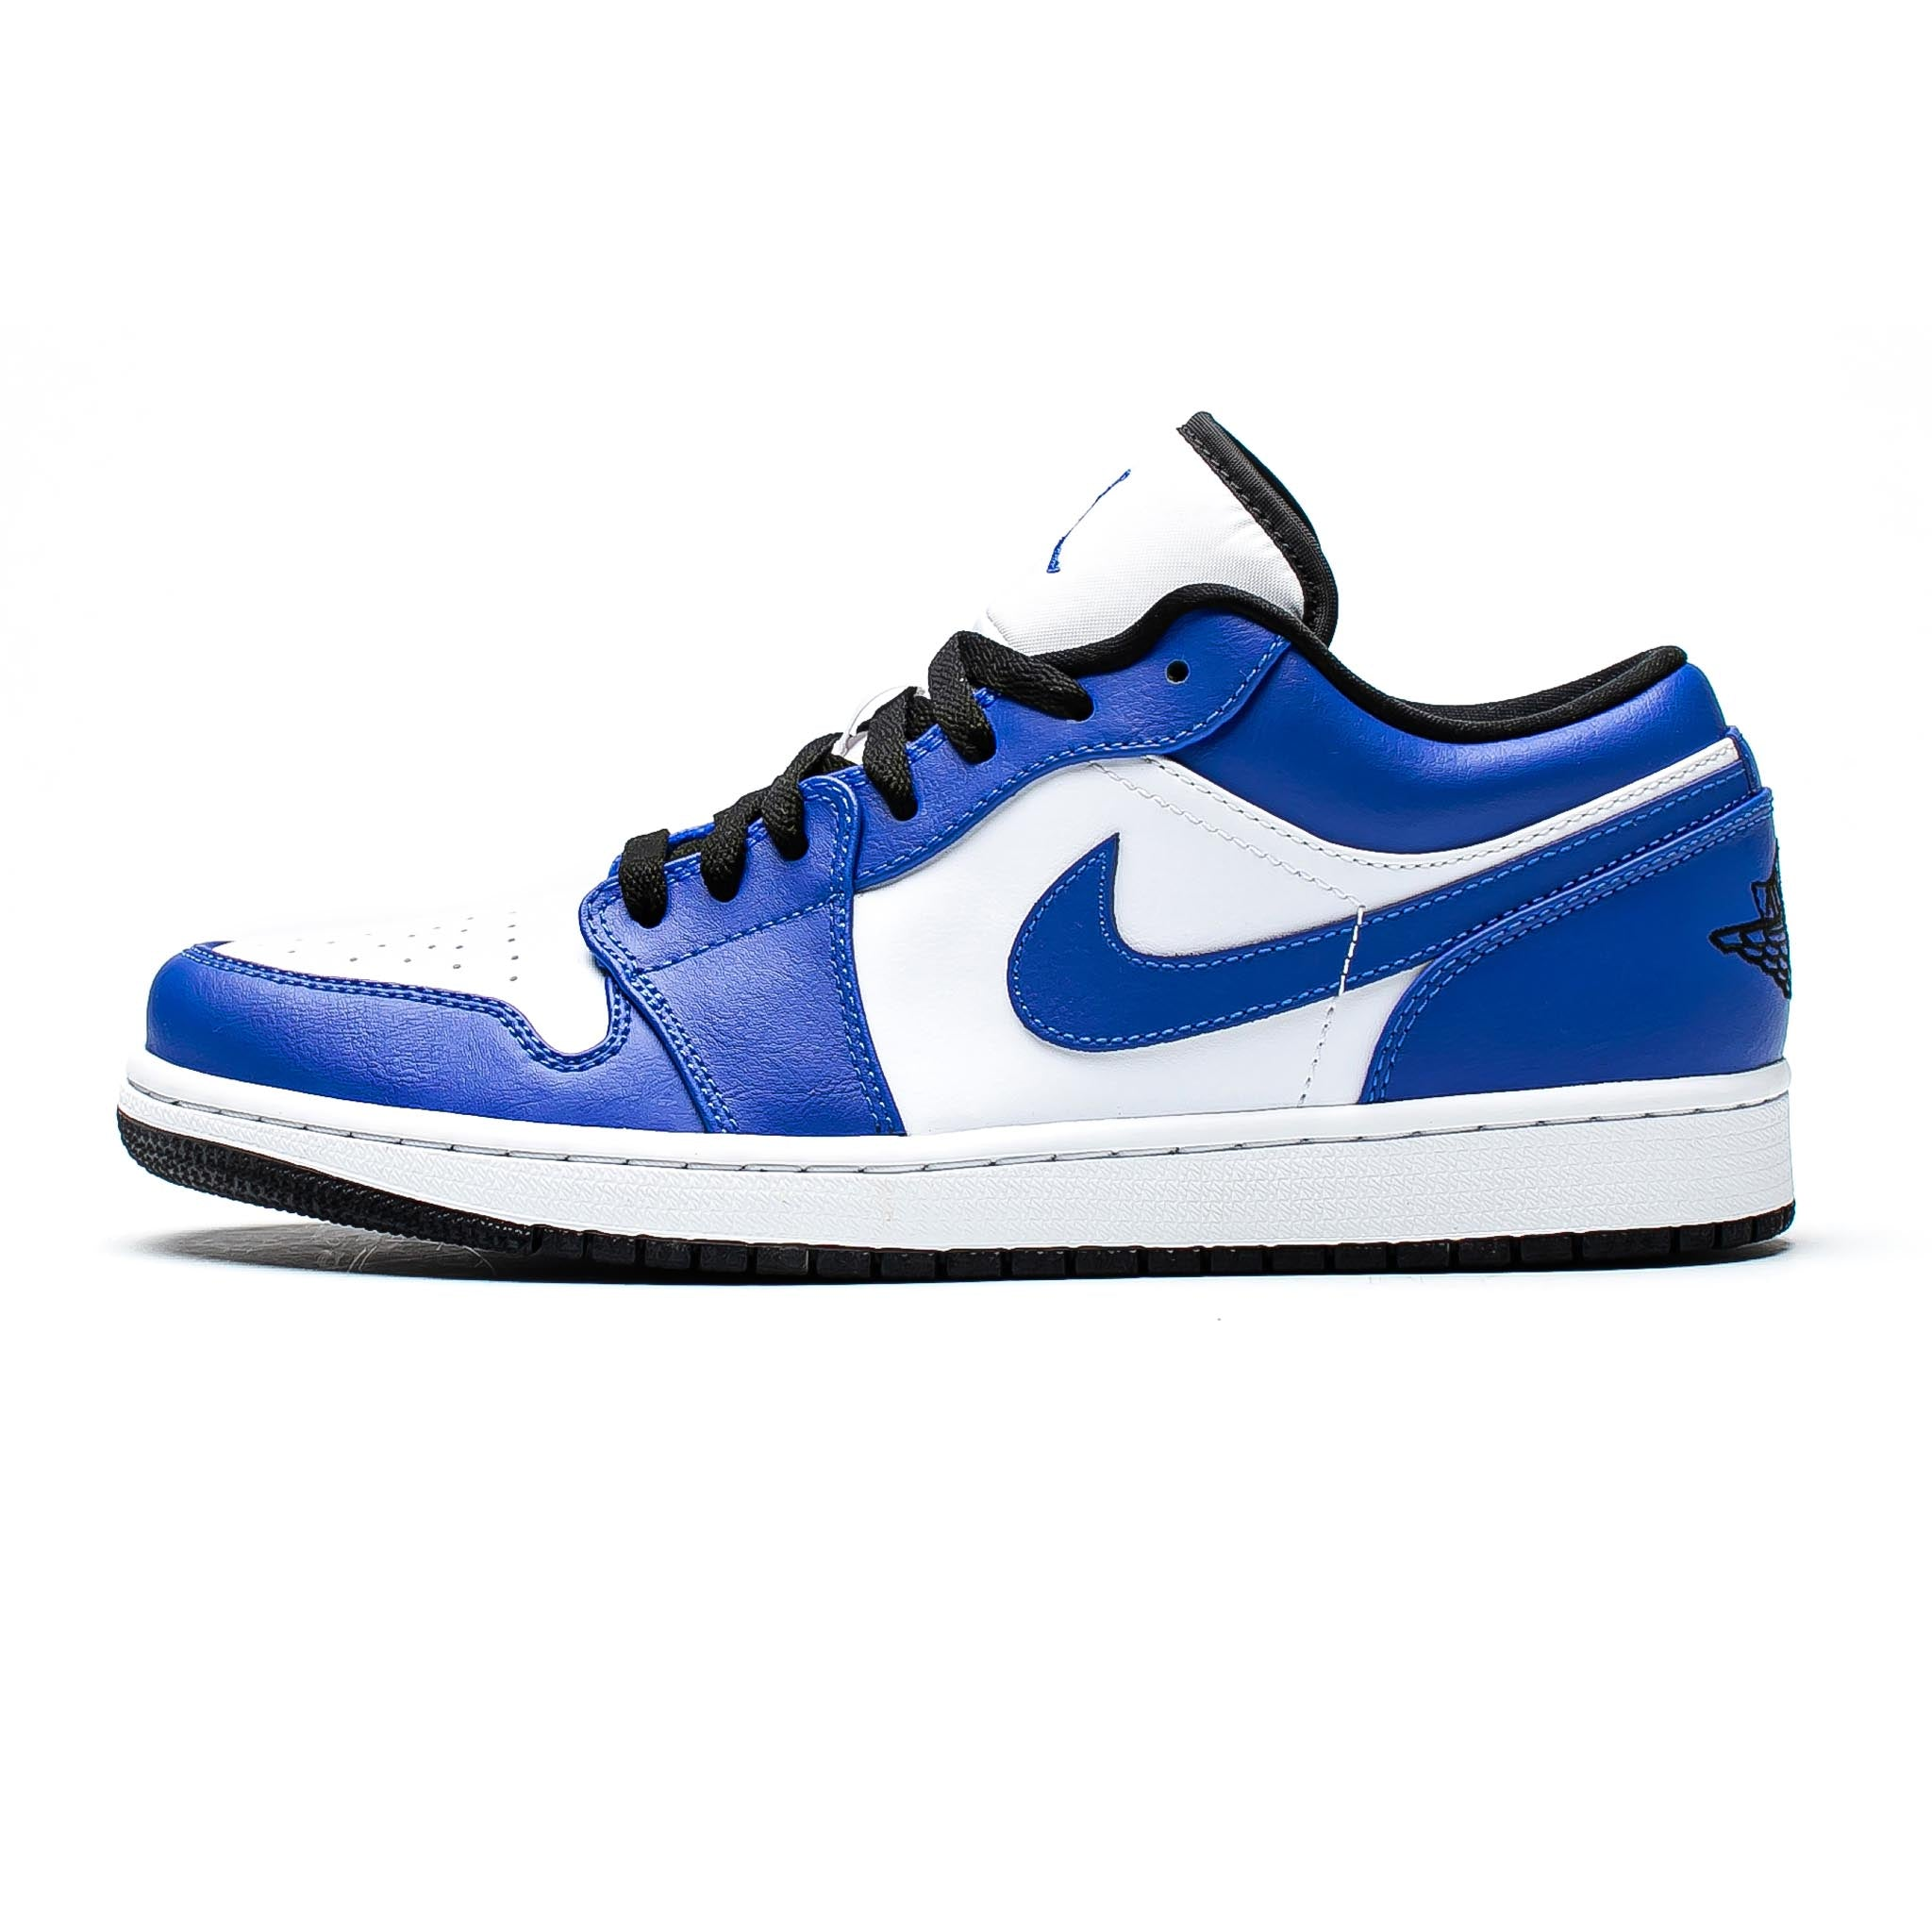 Air Jordan 1 Low 'Game Royal'